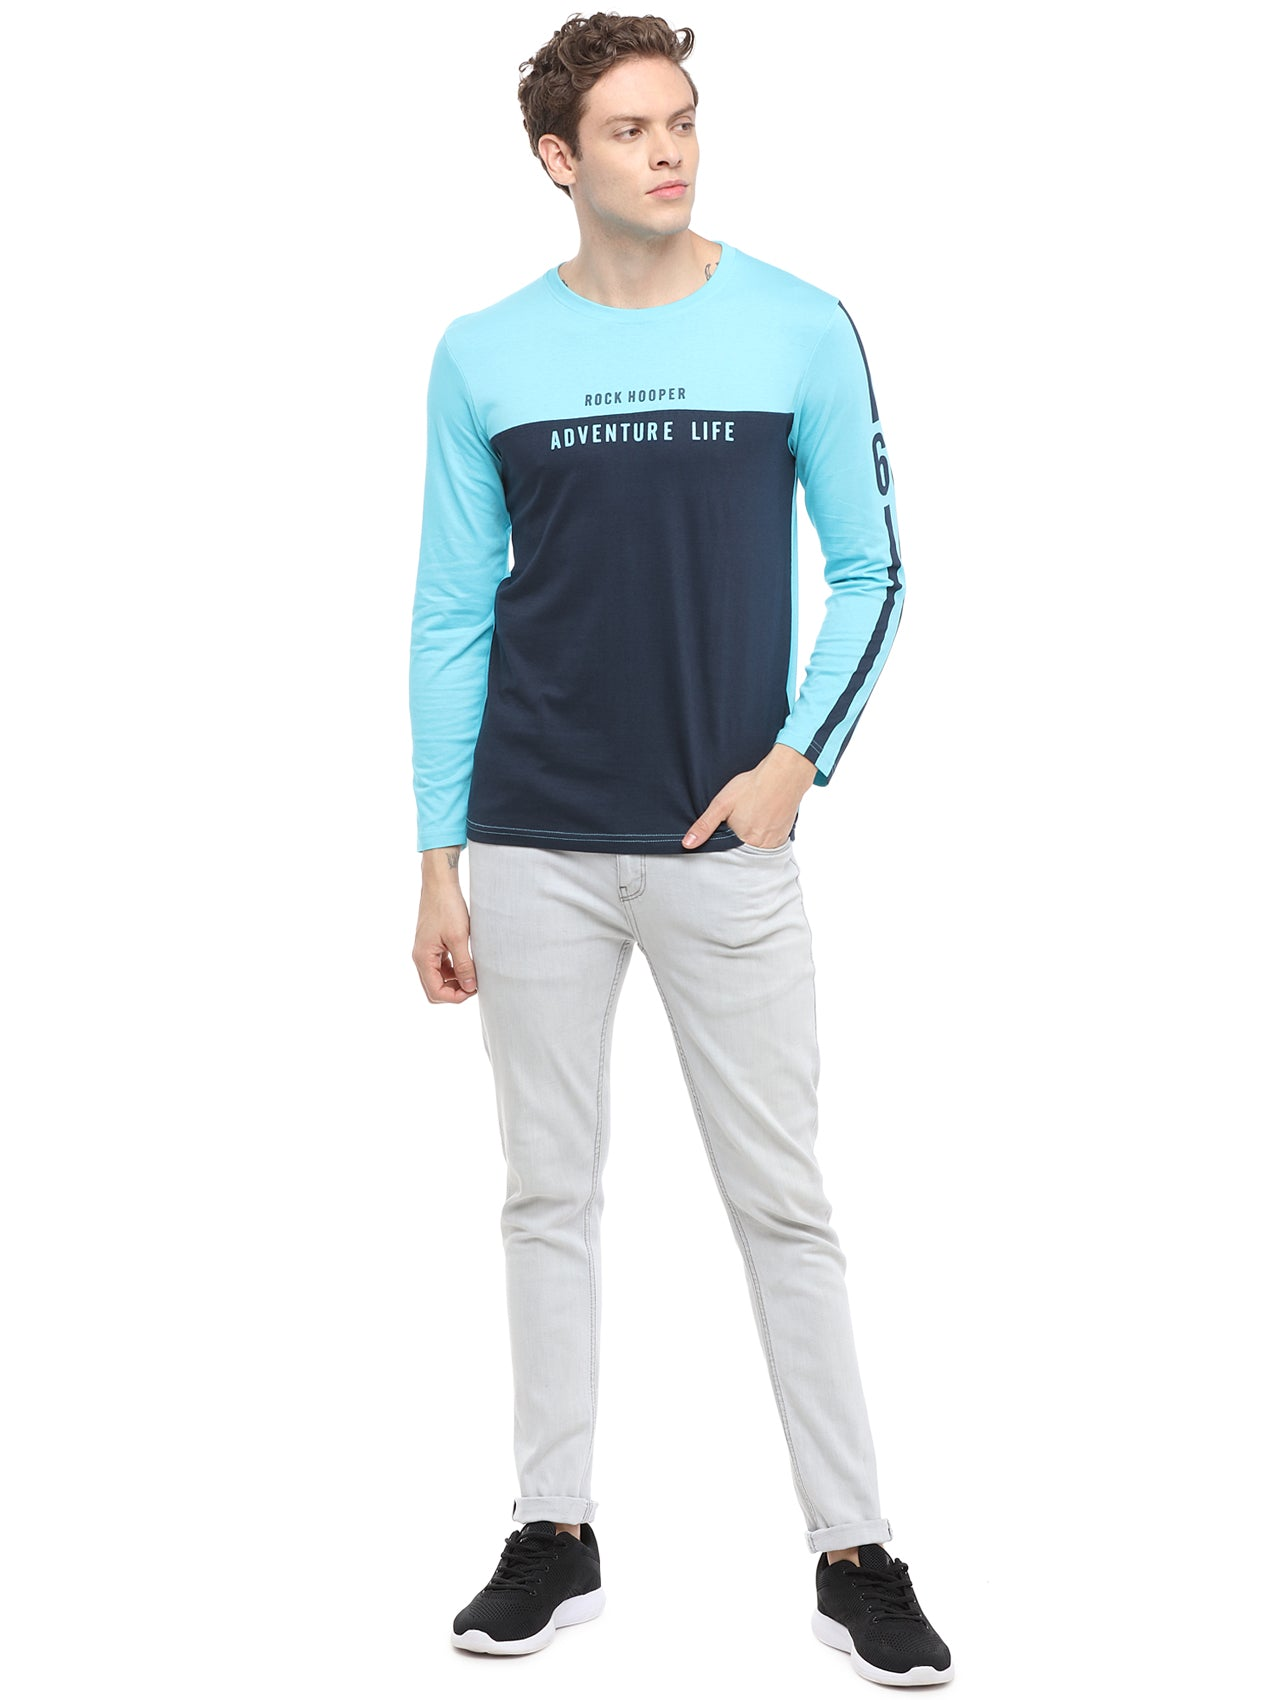 Rock Hooper Men's Full sleeve Round Neck Cotton Aqua Blue/Navy Blue T-Shirt